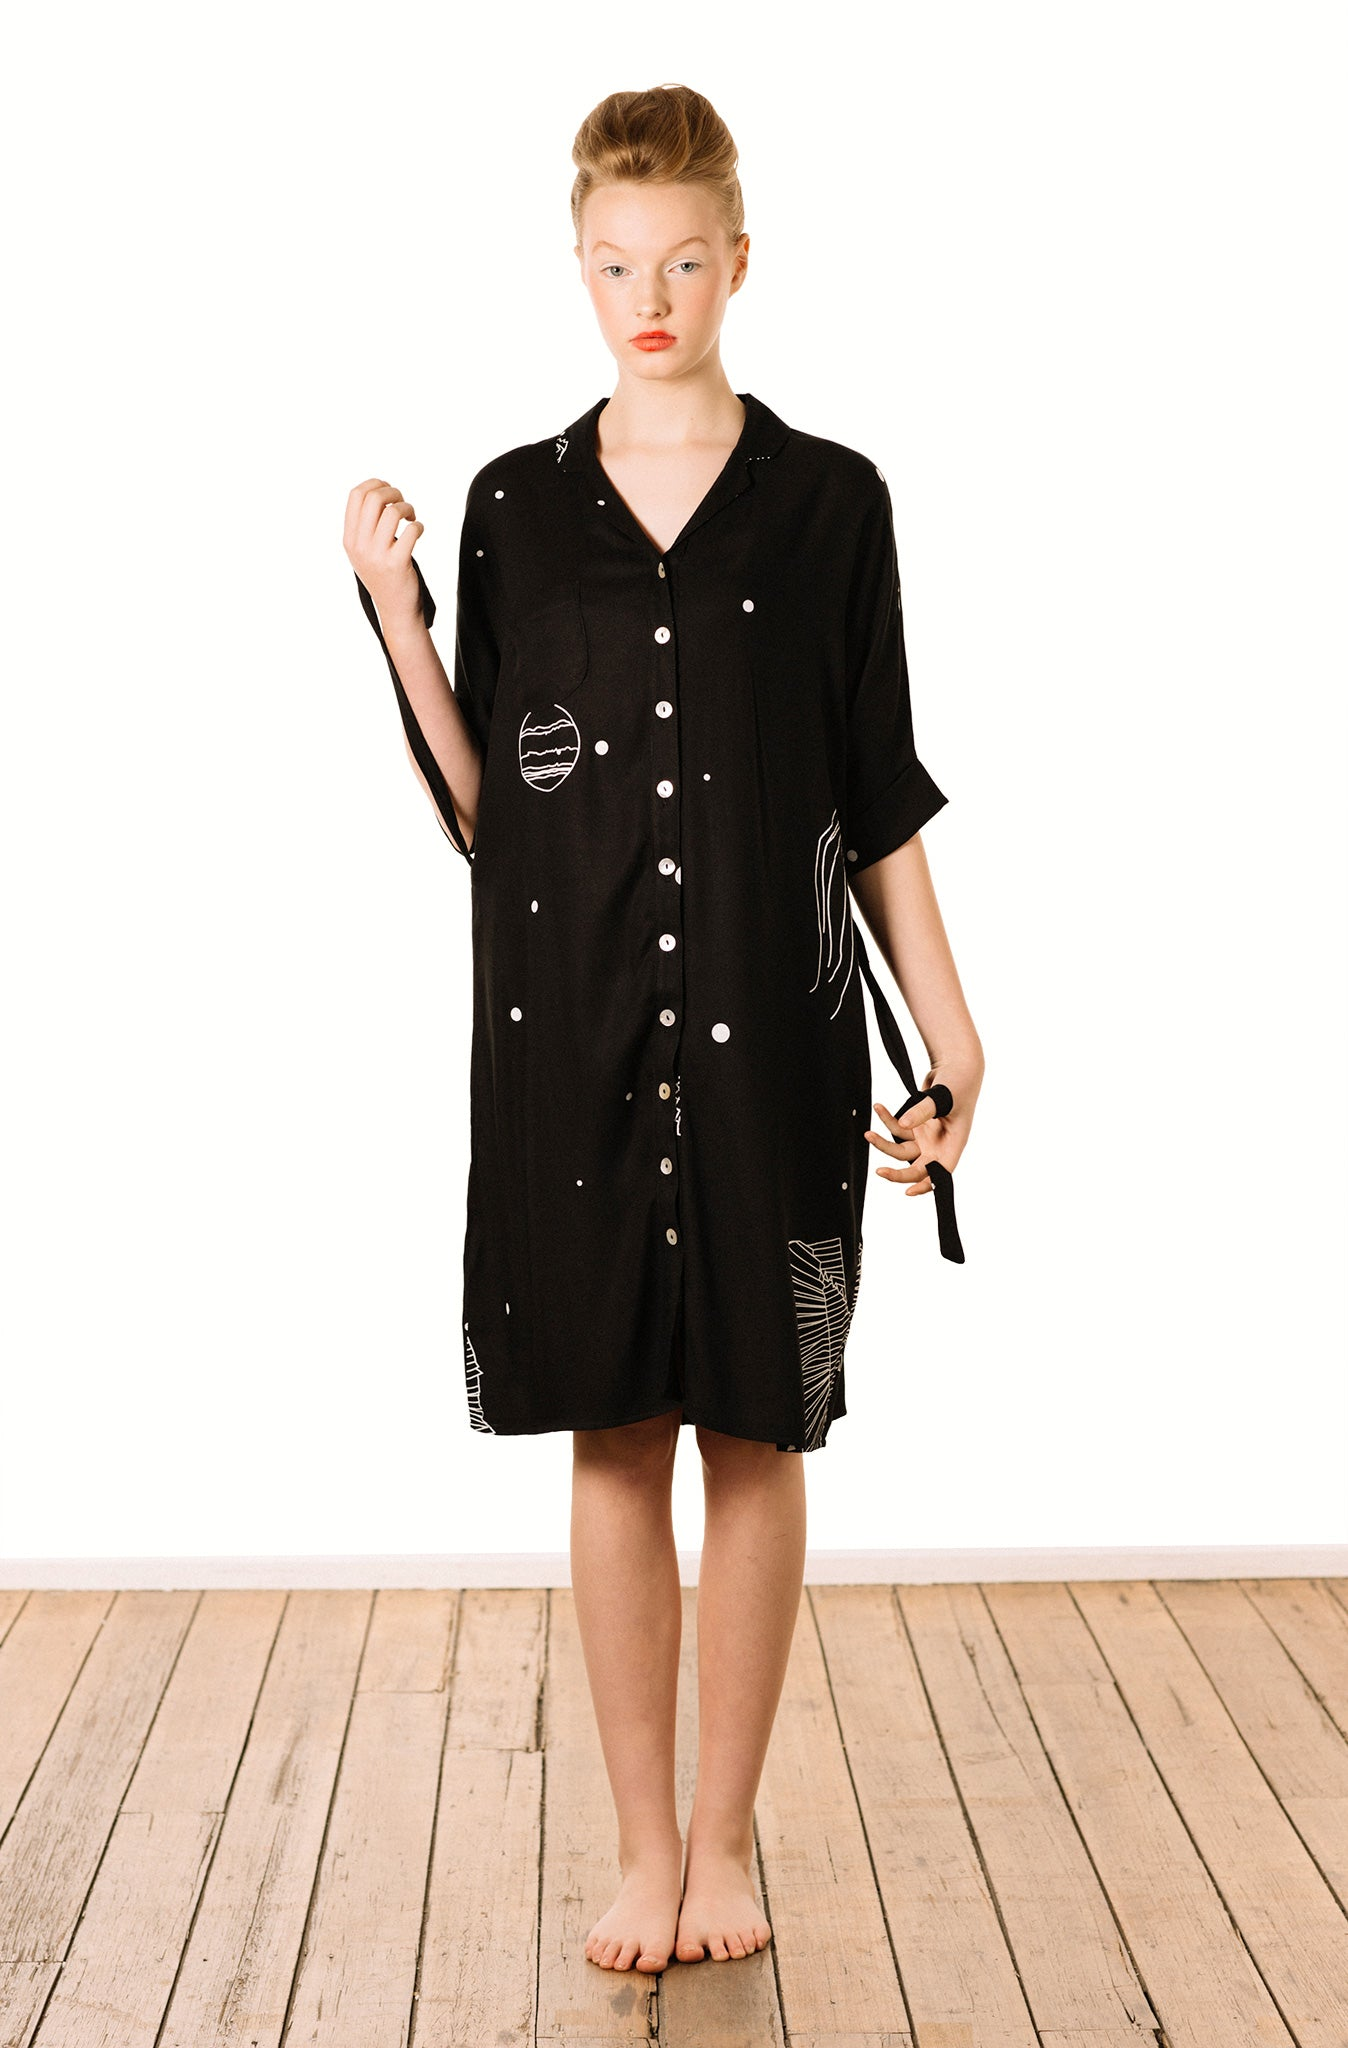 Shirt Dress : Freckles